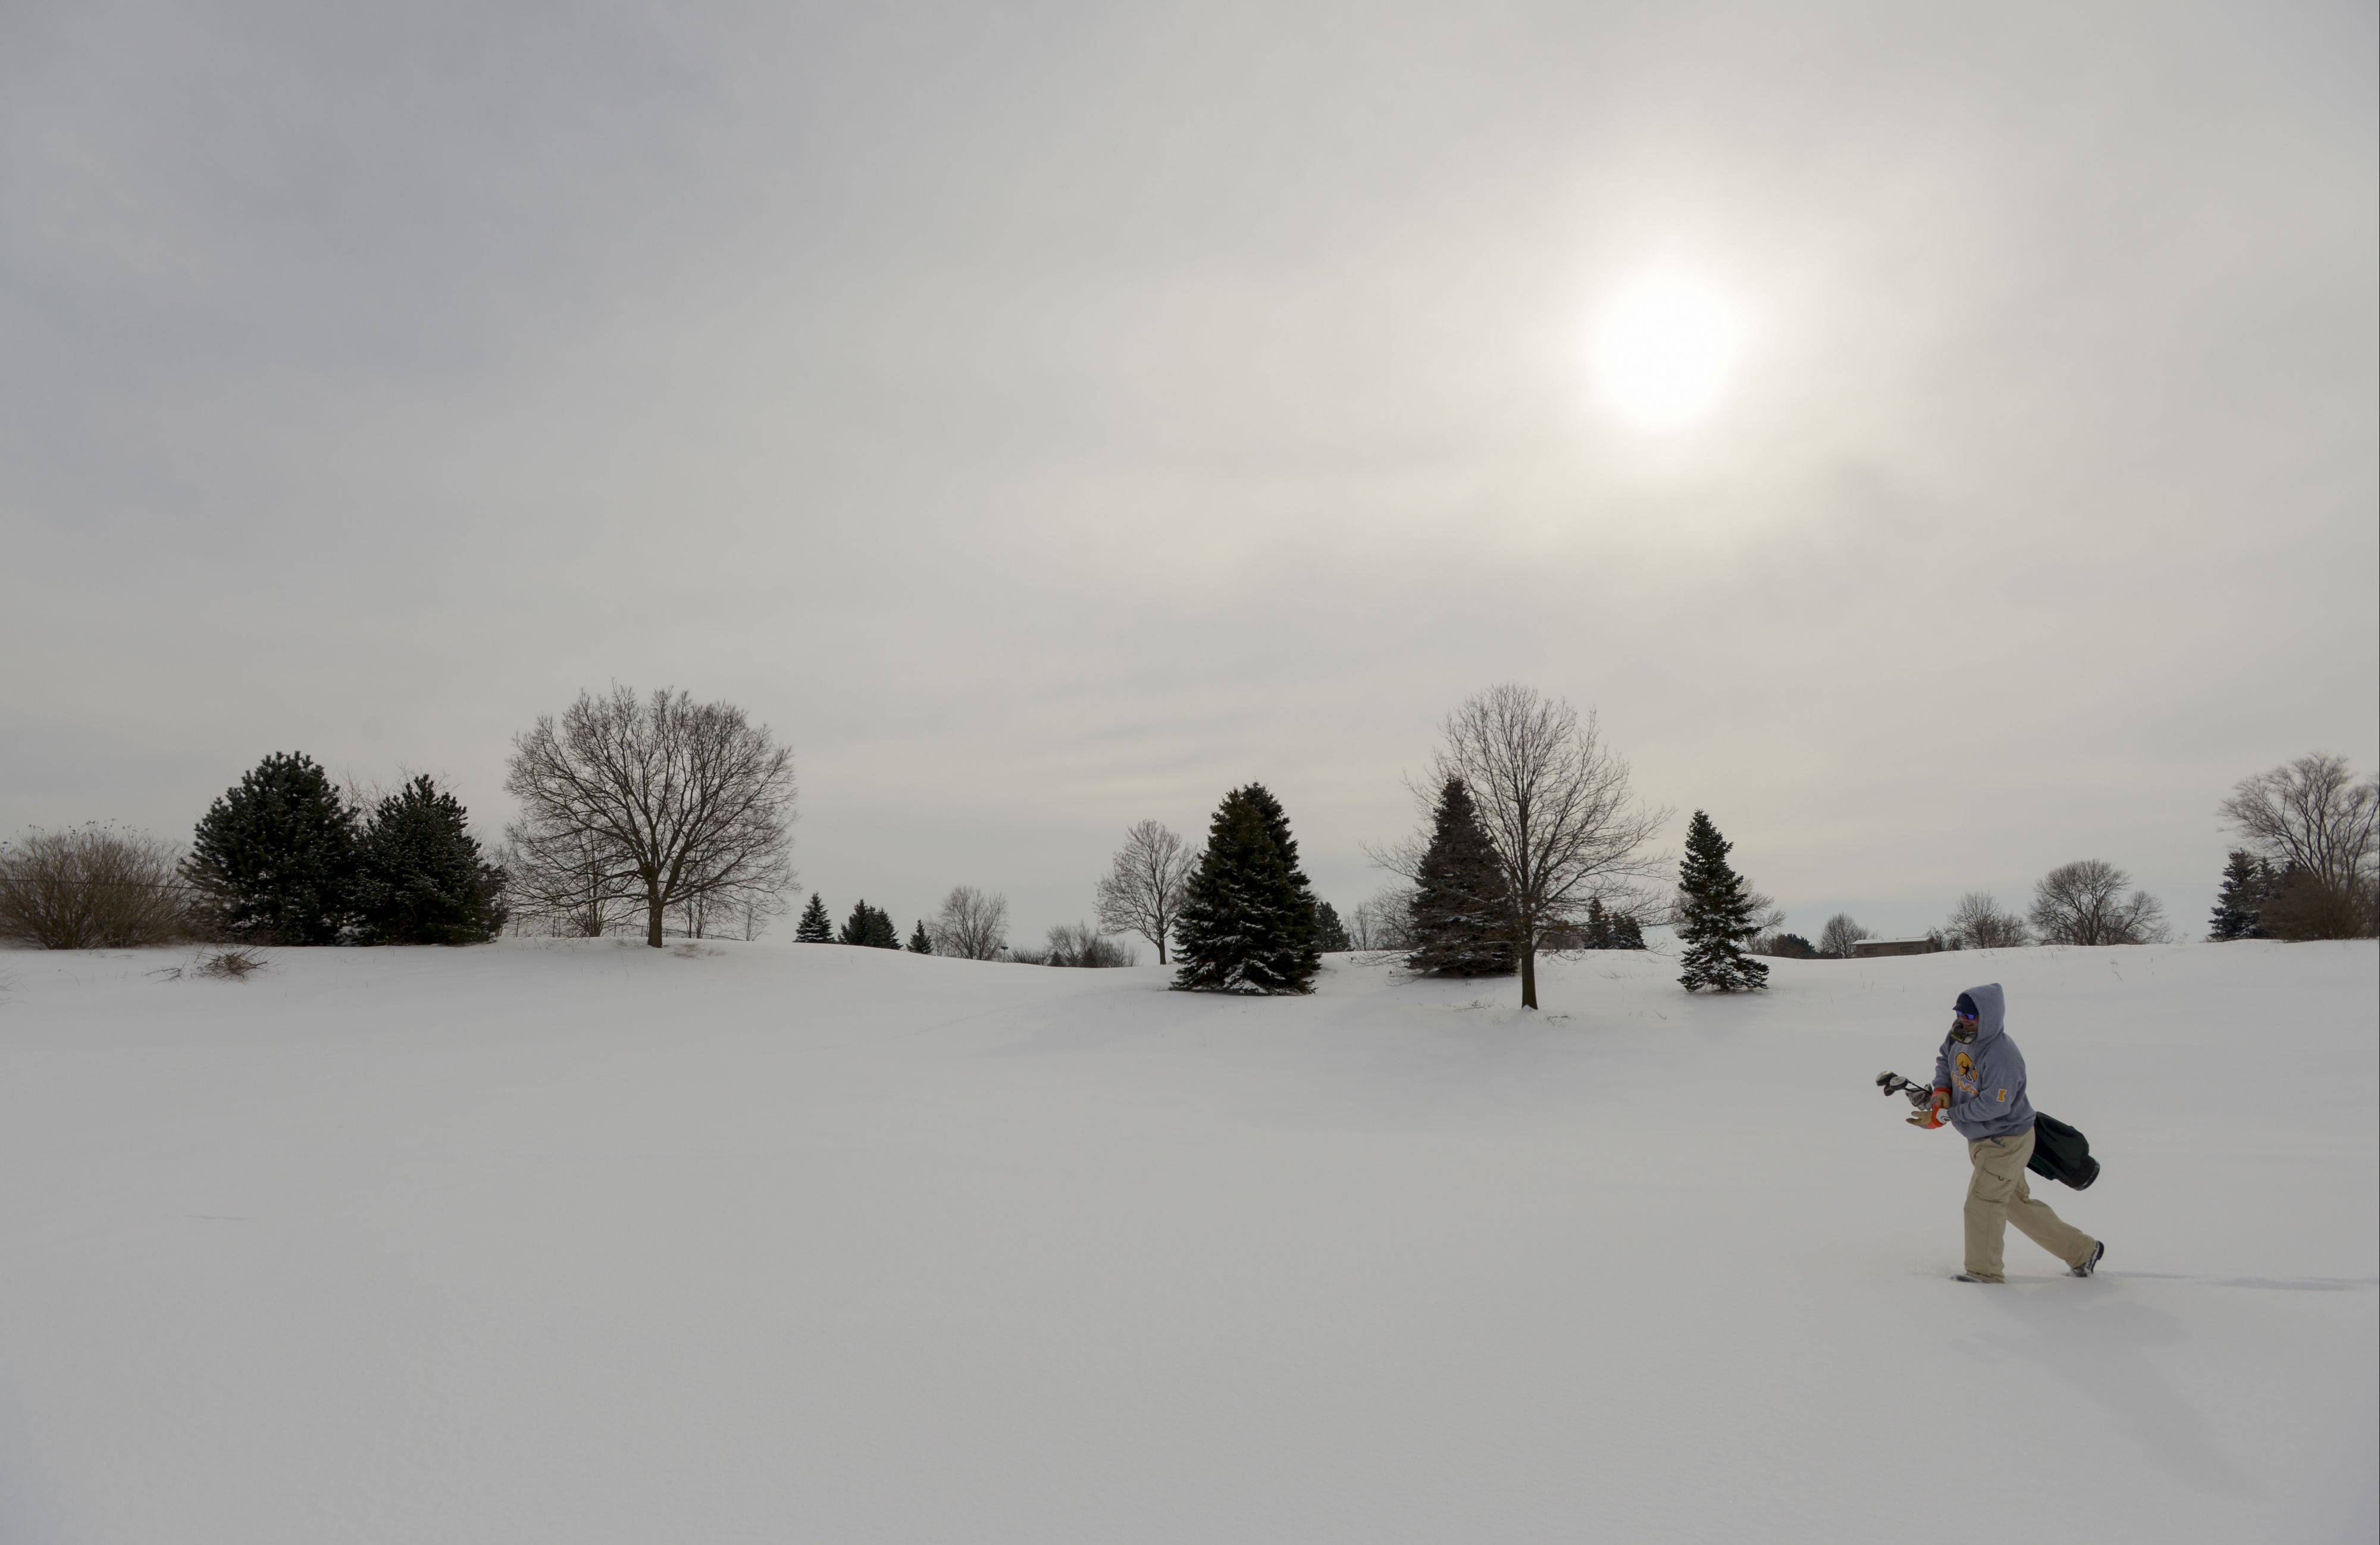 Jordan Troutman of Aurora treks through the snow toward the 10th green Sunday at Springbrook Golf Course in Naperville. Troutman was part a group maintaining a 28-year tradition of playing golf on Super Bowl Sunday regardless of the weather.